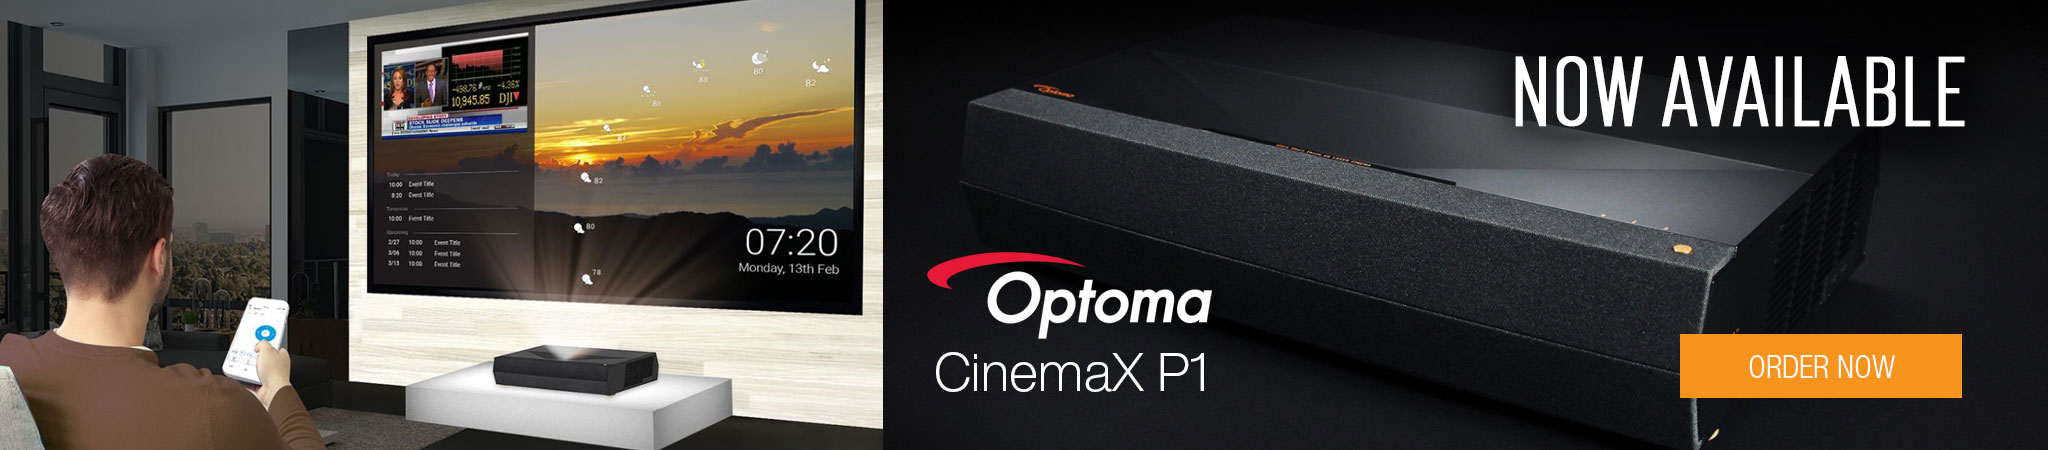 Optoma CinemaX P1 Projector